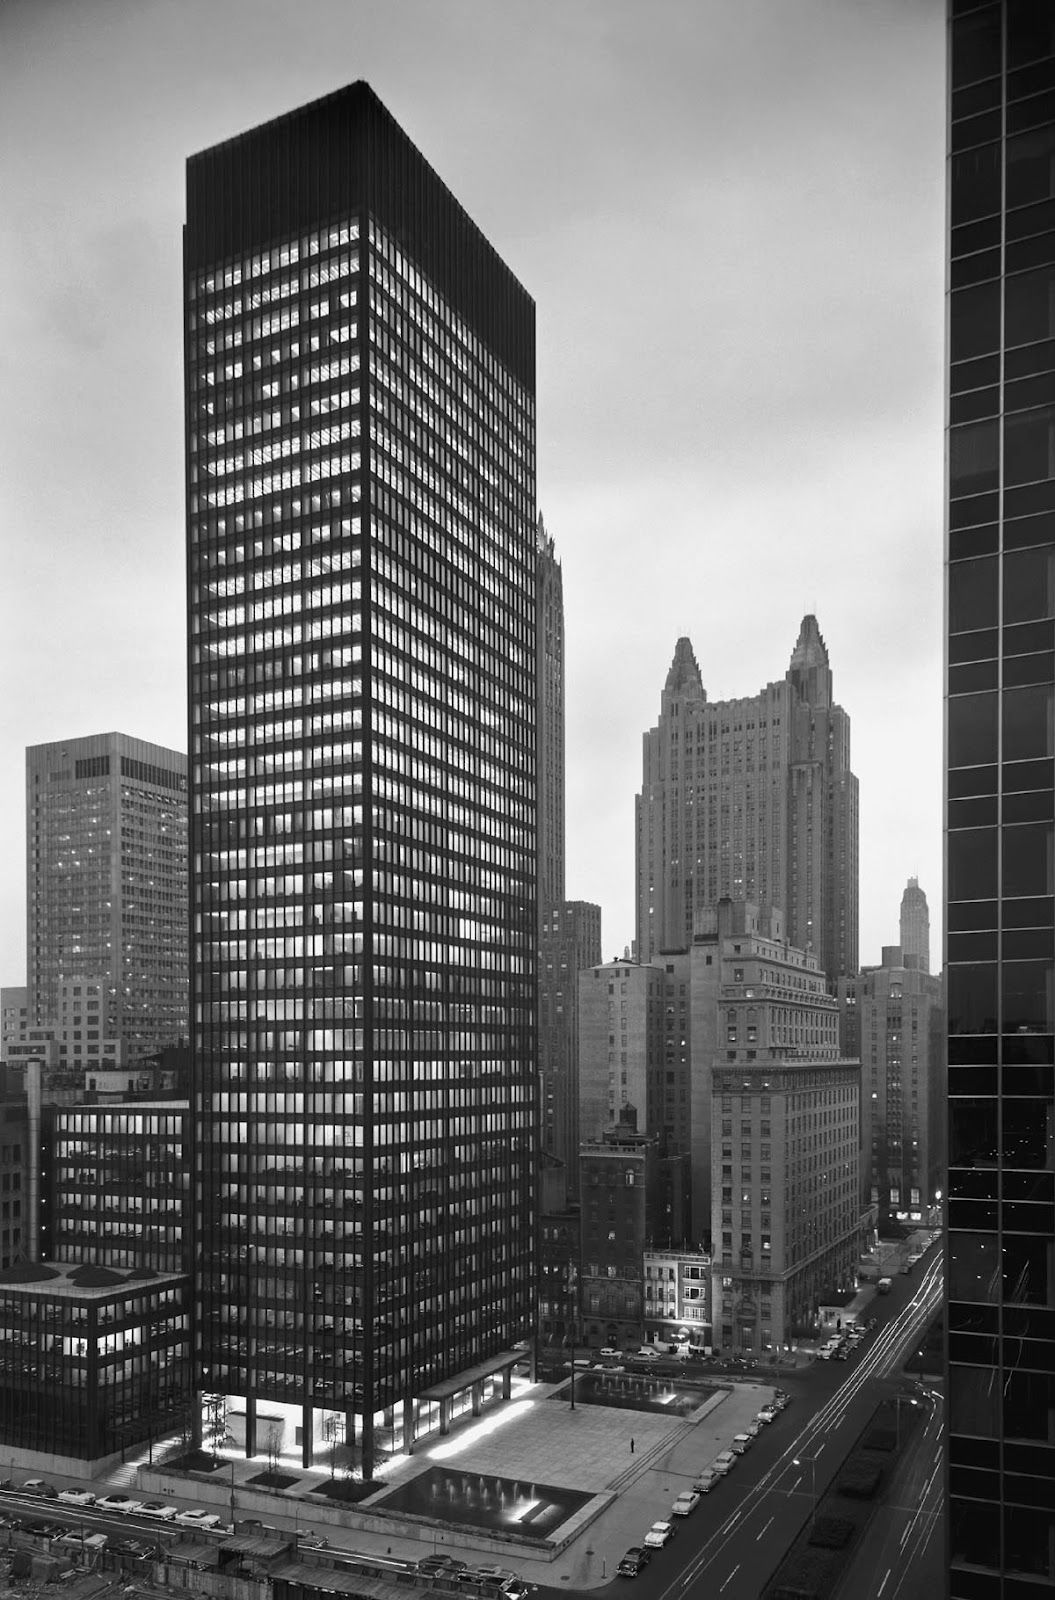 Mies van der Rohe example of International Style